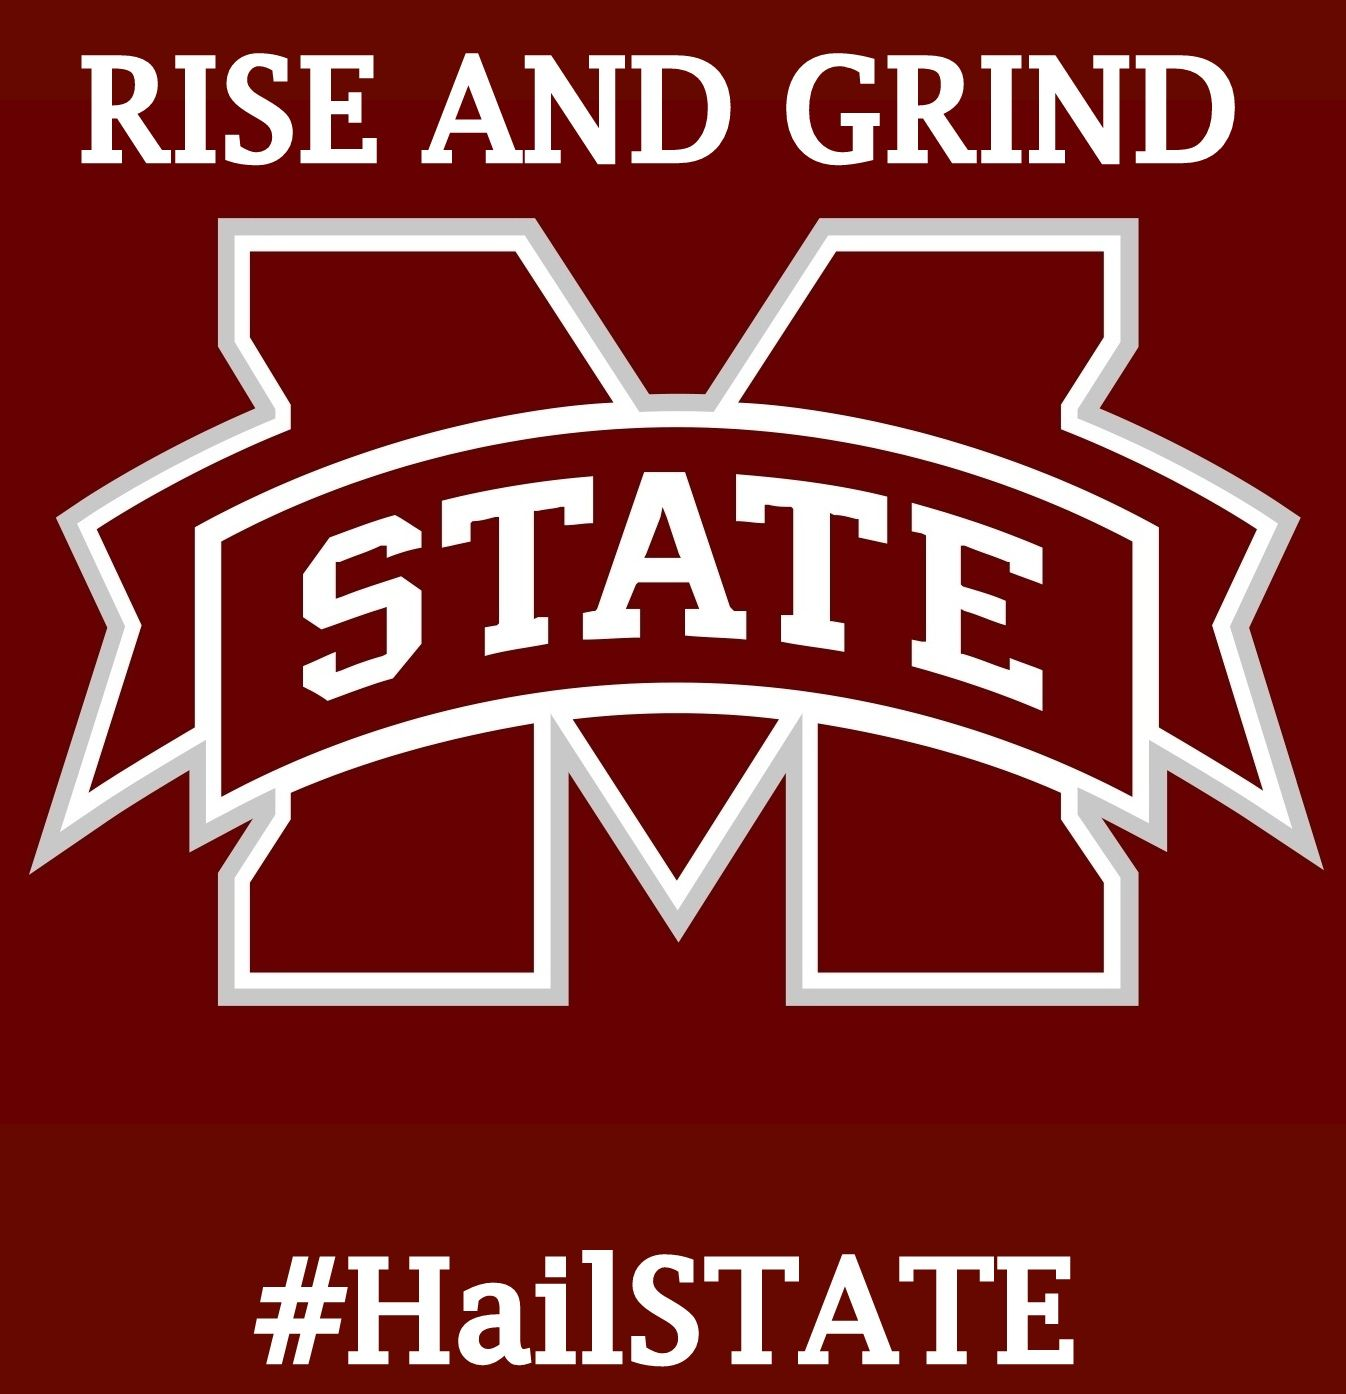 Rise And Grind Hailstate Mississippi State Mississippi State Bulldogs Mississippi